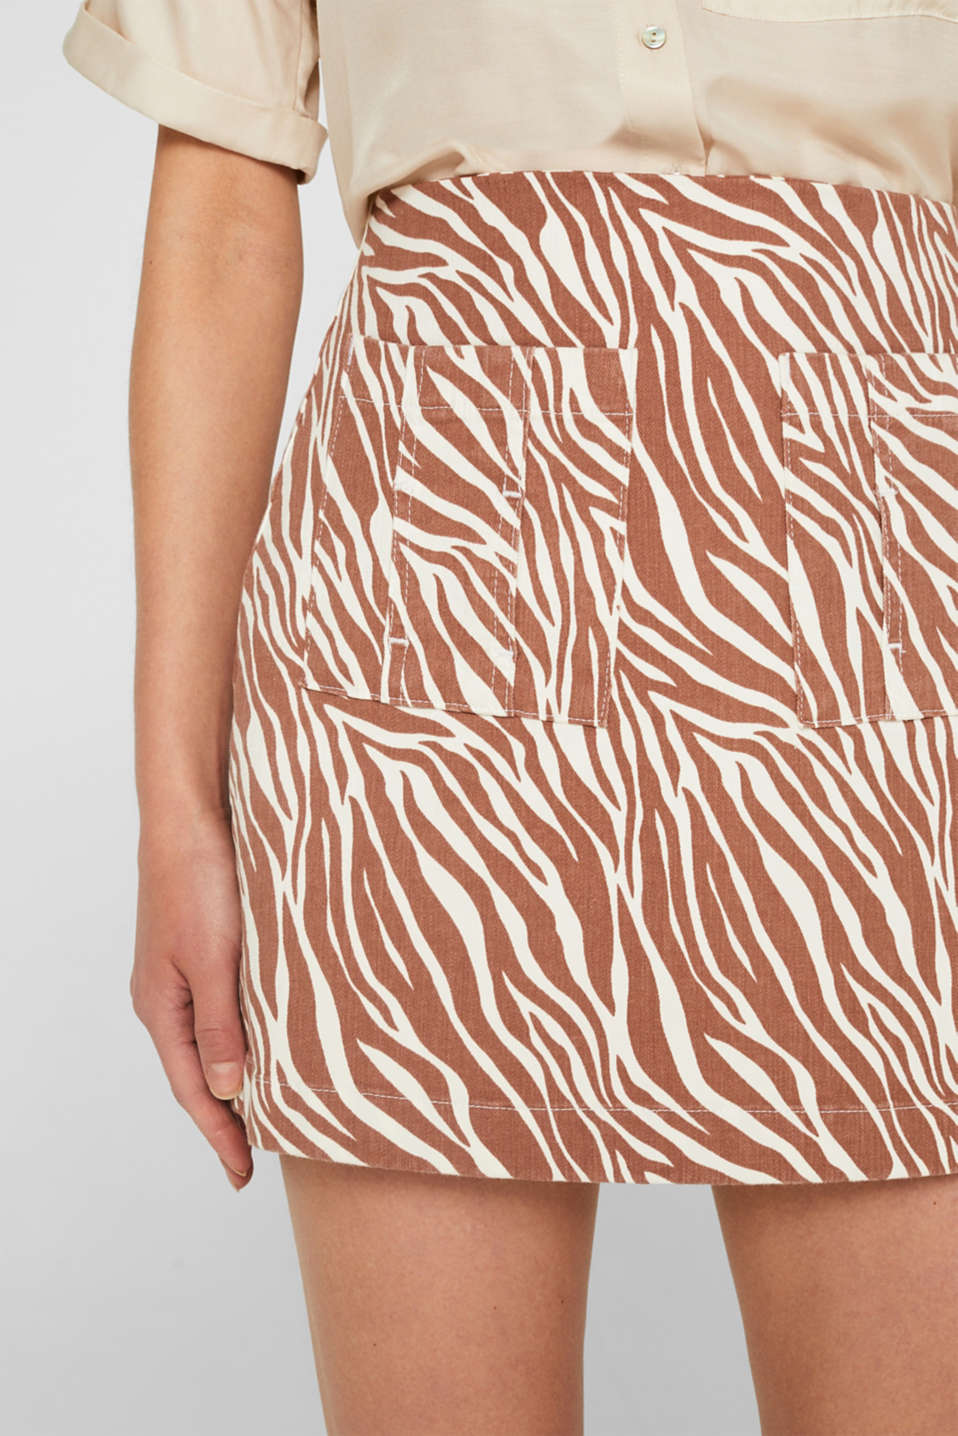 Stretch denim skirt with an animal print, BEIGE, detail image number 2